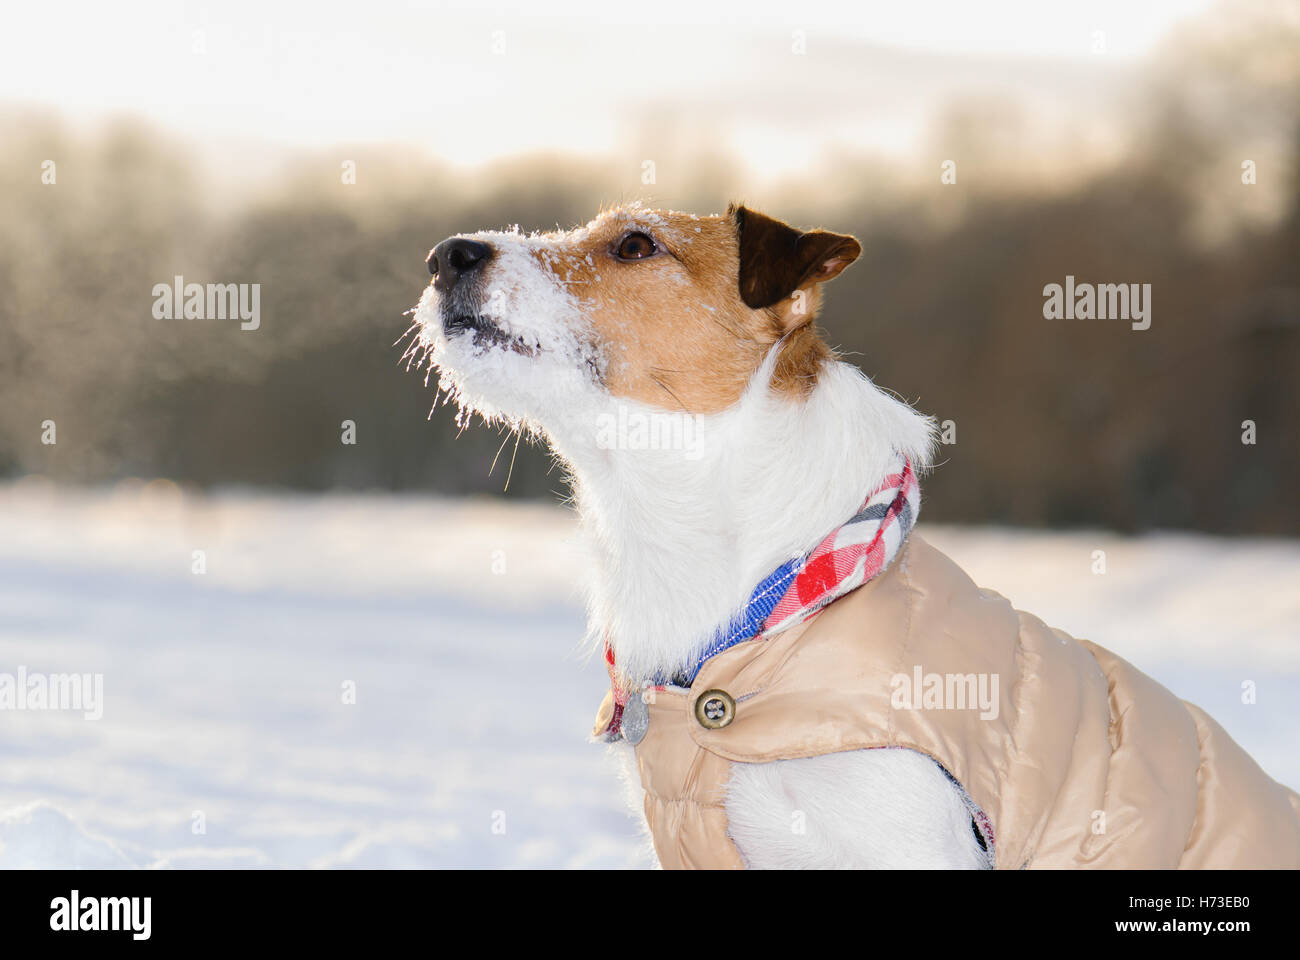 Obedient dog at cold day wearing warm coat apparel - Stock Image